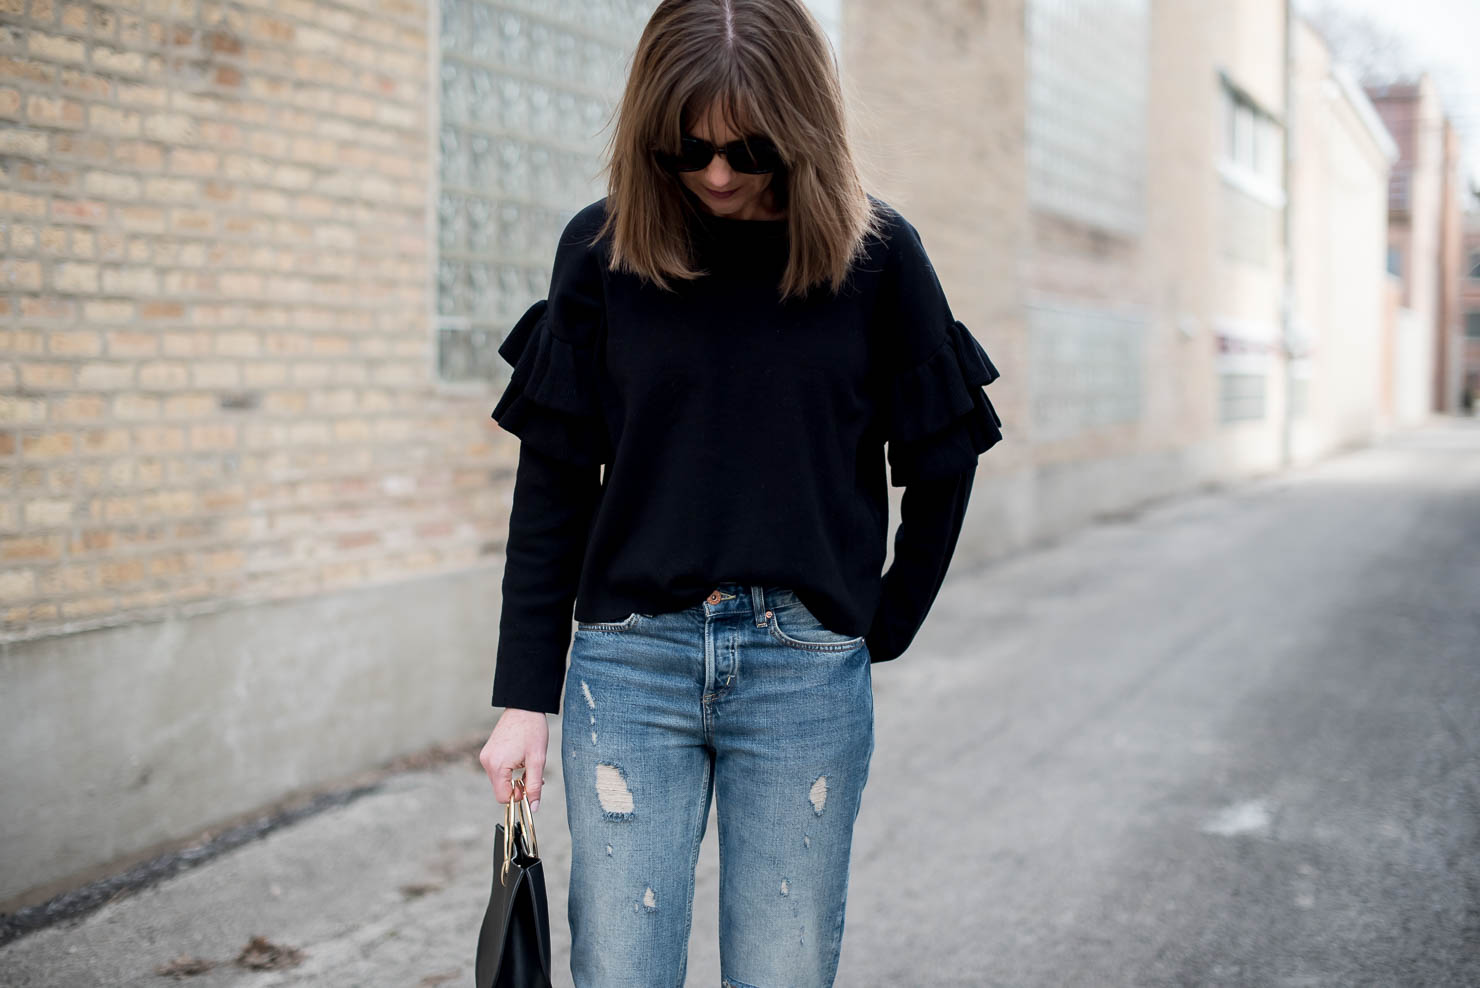 h&m-spring-fashion-2017-transitional-fashion-back-to-basics-ruffle-sleeve-sweater-boyfriend-jeans-minimalist-style